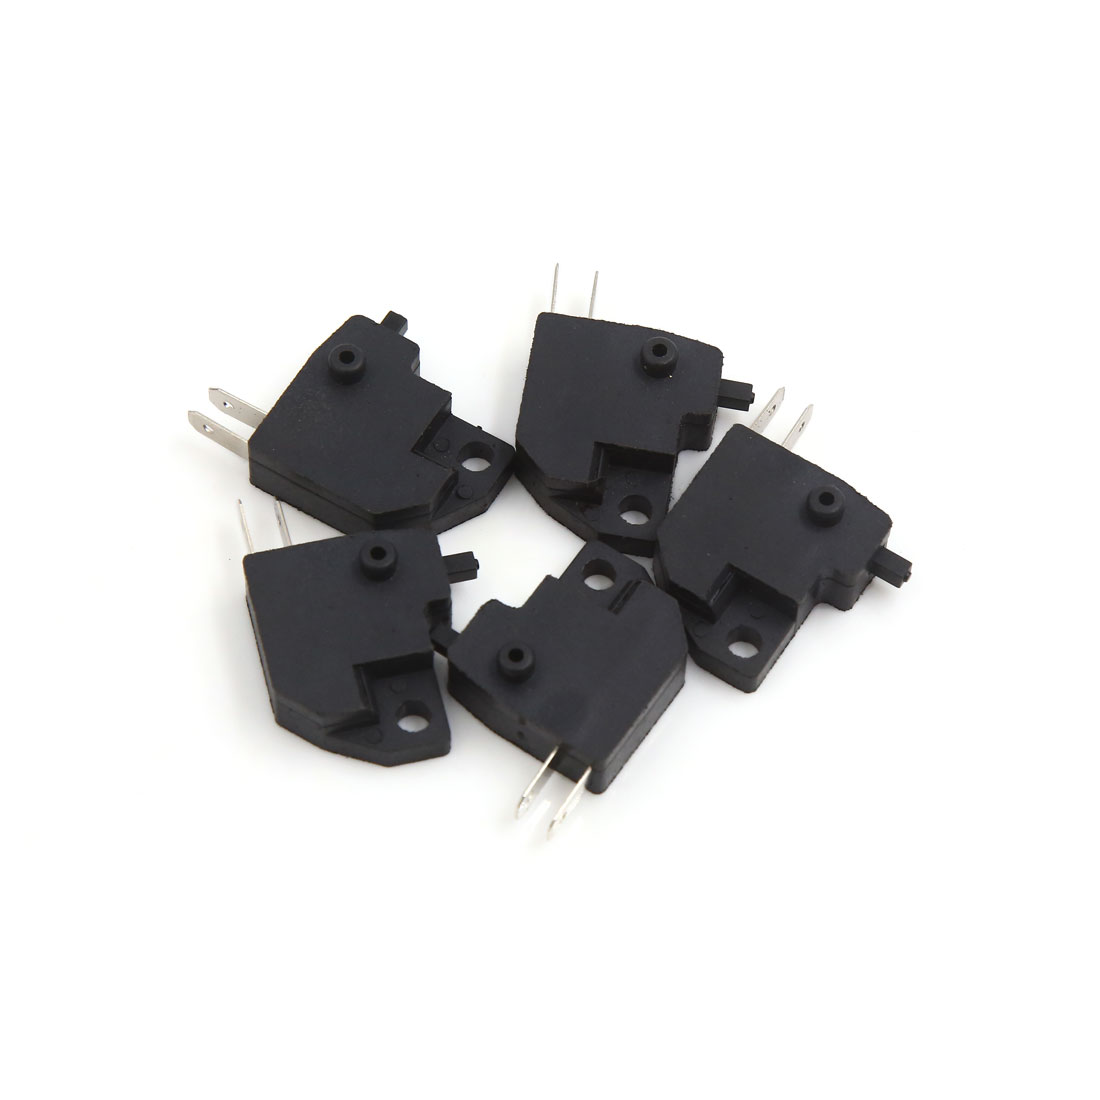 5Pcs Universal 2 Pins Square Motorcycle Scooter Disc Brake Control Switch Black